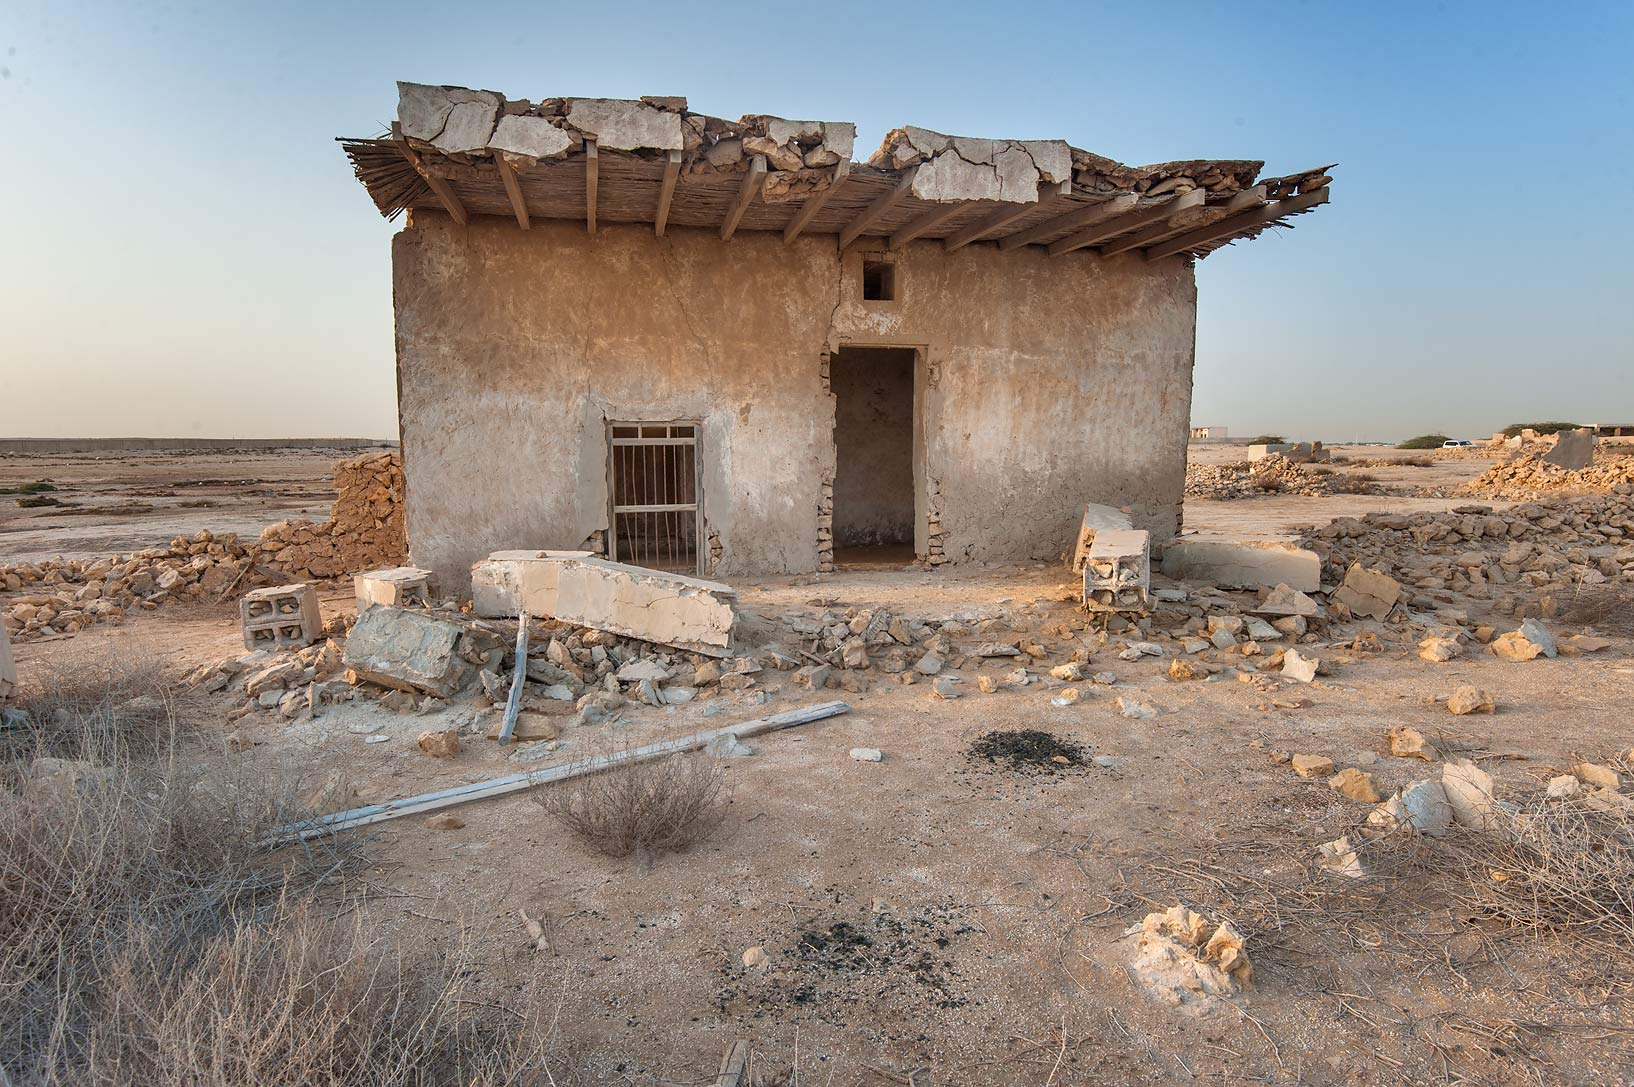 Some stone shed in a fishing village of Al Jumail (Jumayl) west of Ruwais. Northern Qatar